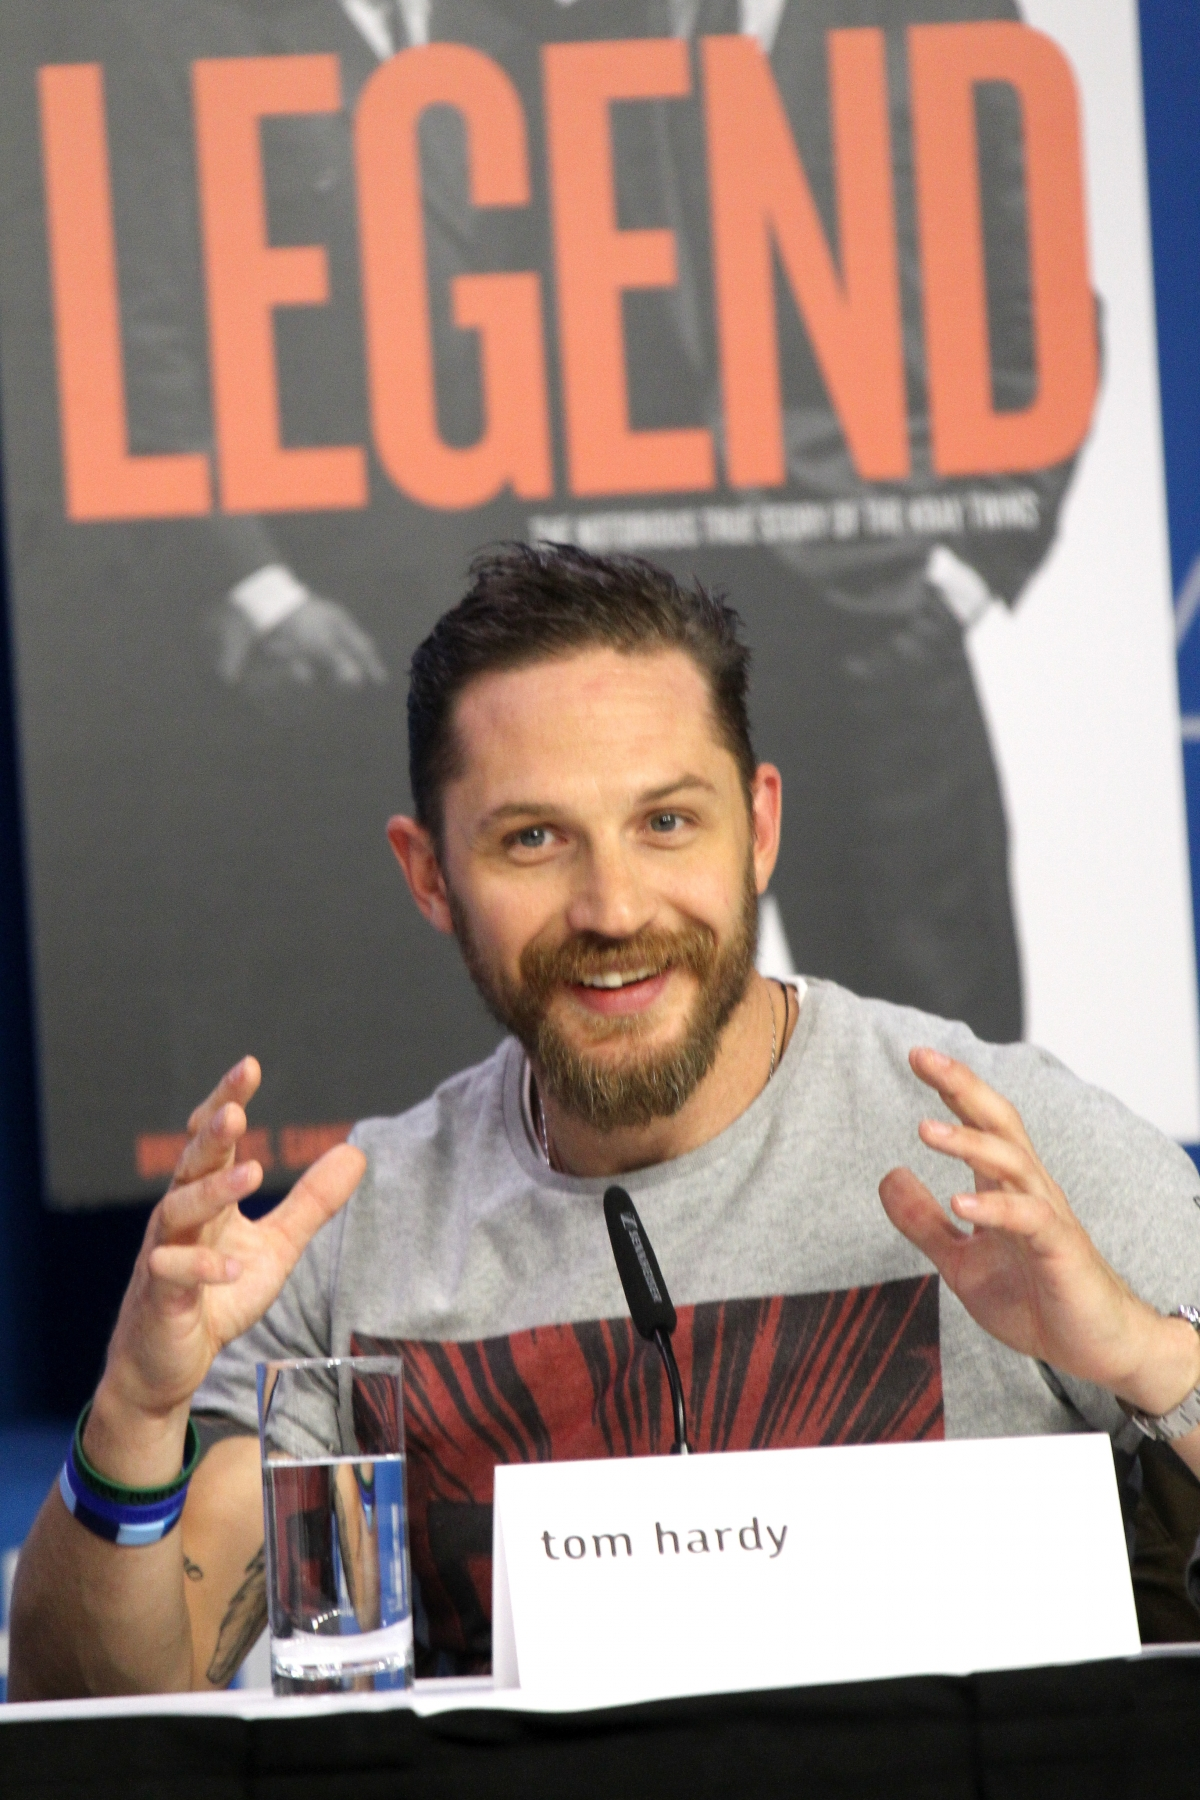 Tom Hardy bisexual